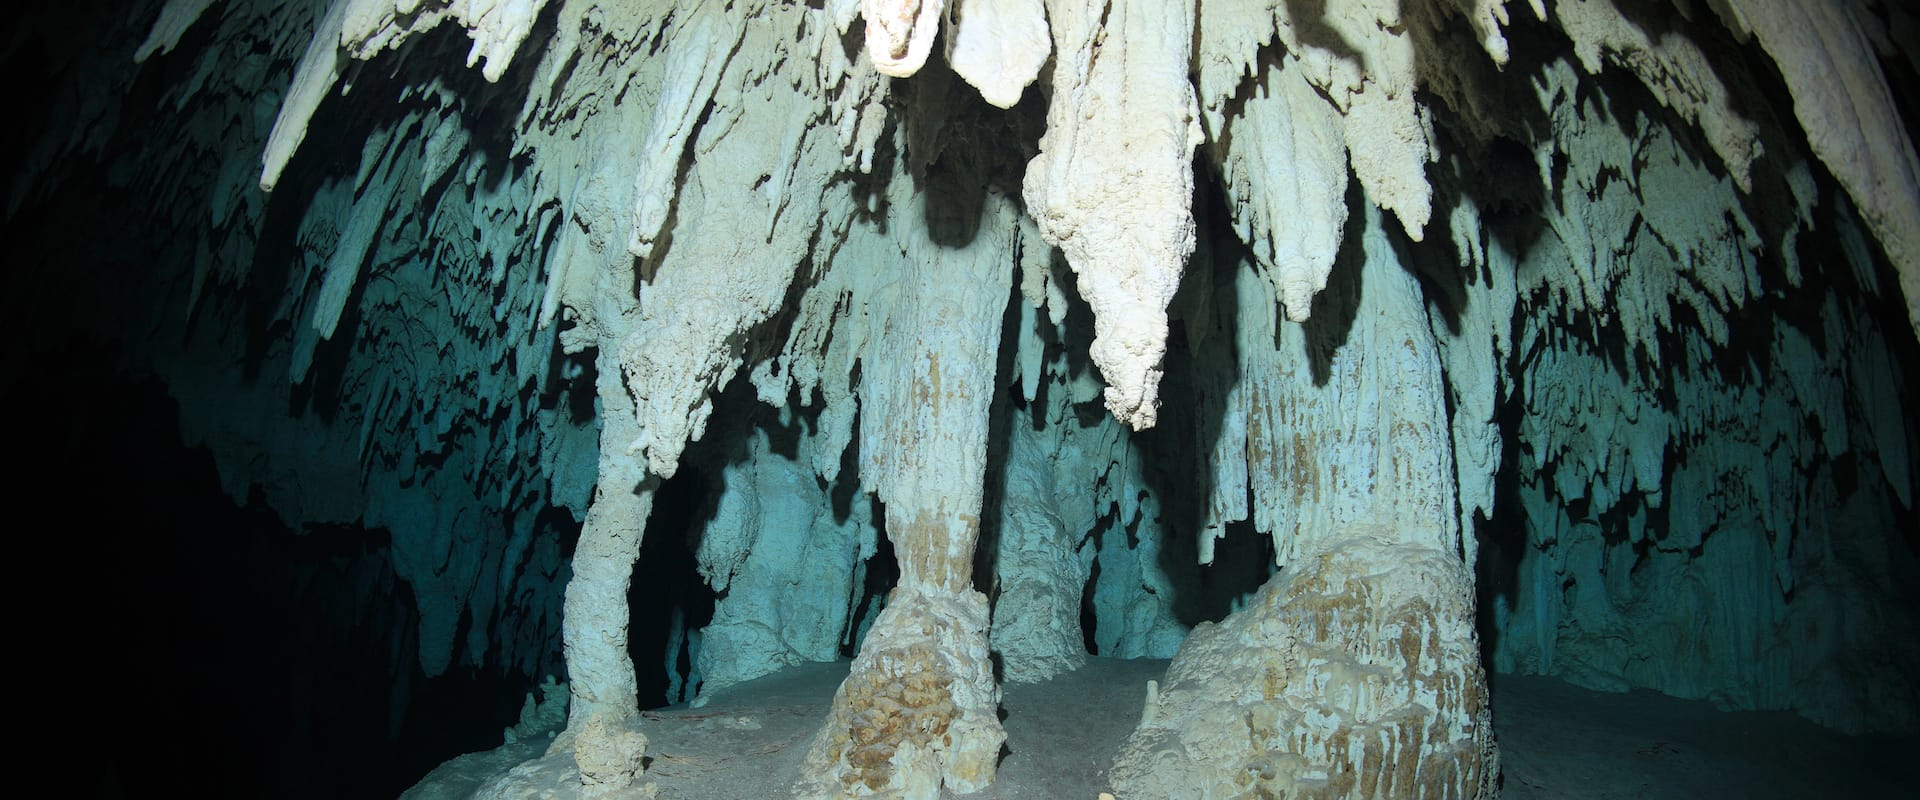 Tauchsafari Chandelier Caves